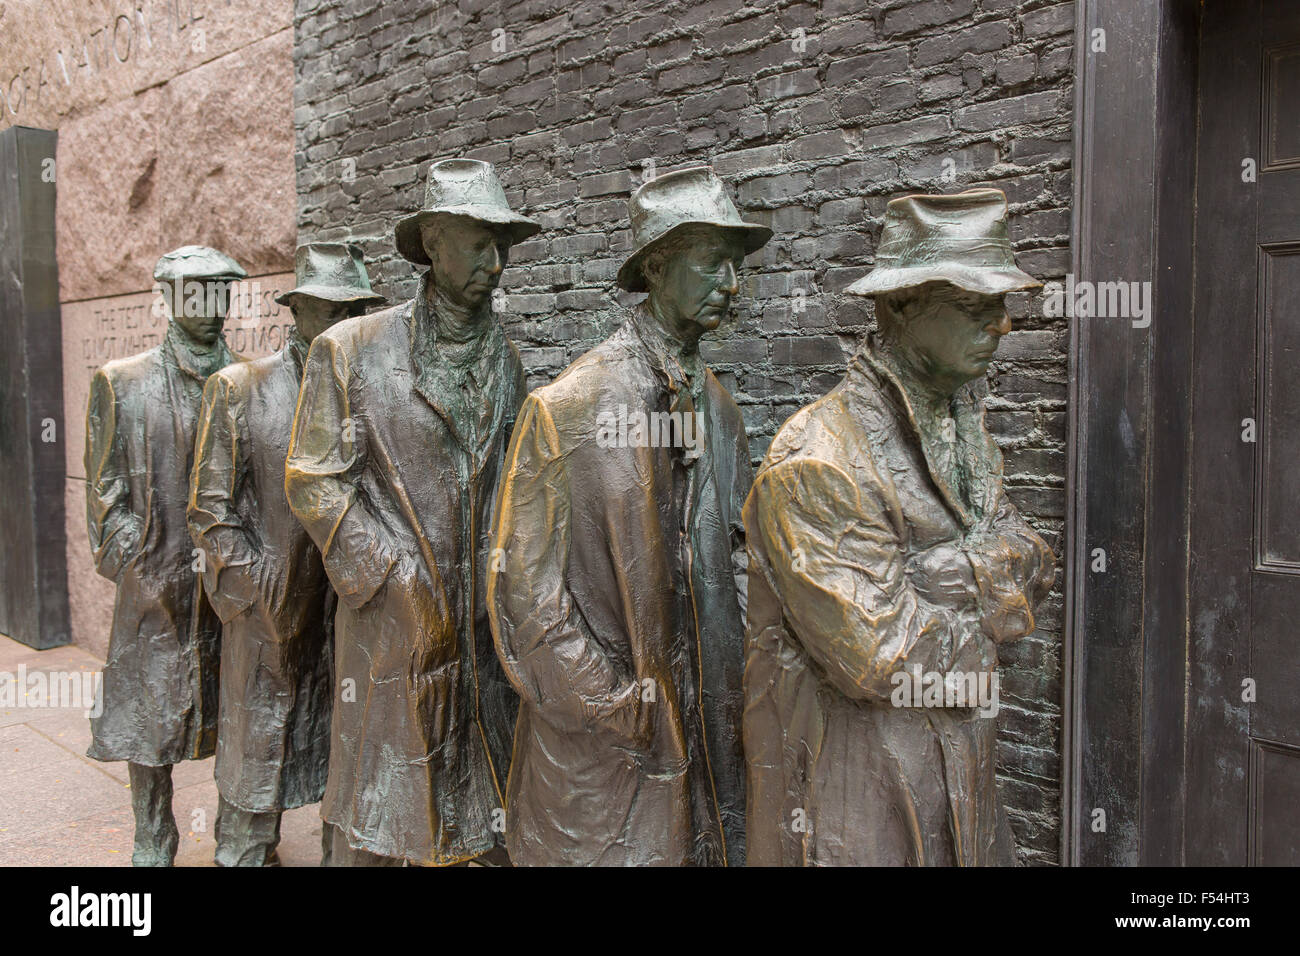 WASHINGTON, DC, USA - Franklin Roosevelt Memorial. Bronze sculpture of depression bread line. Stock Photo